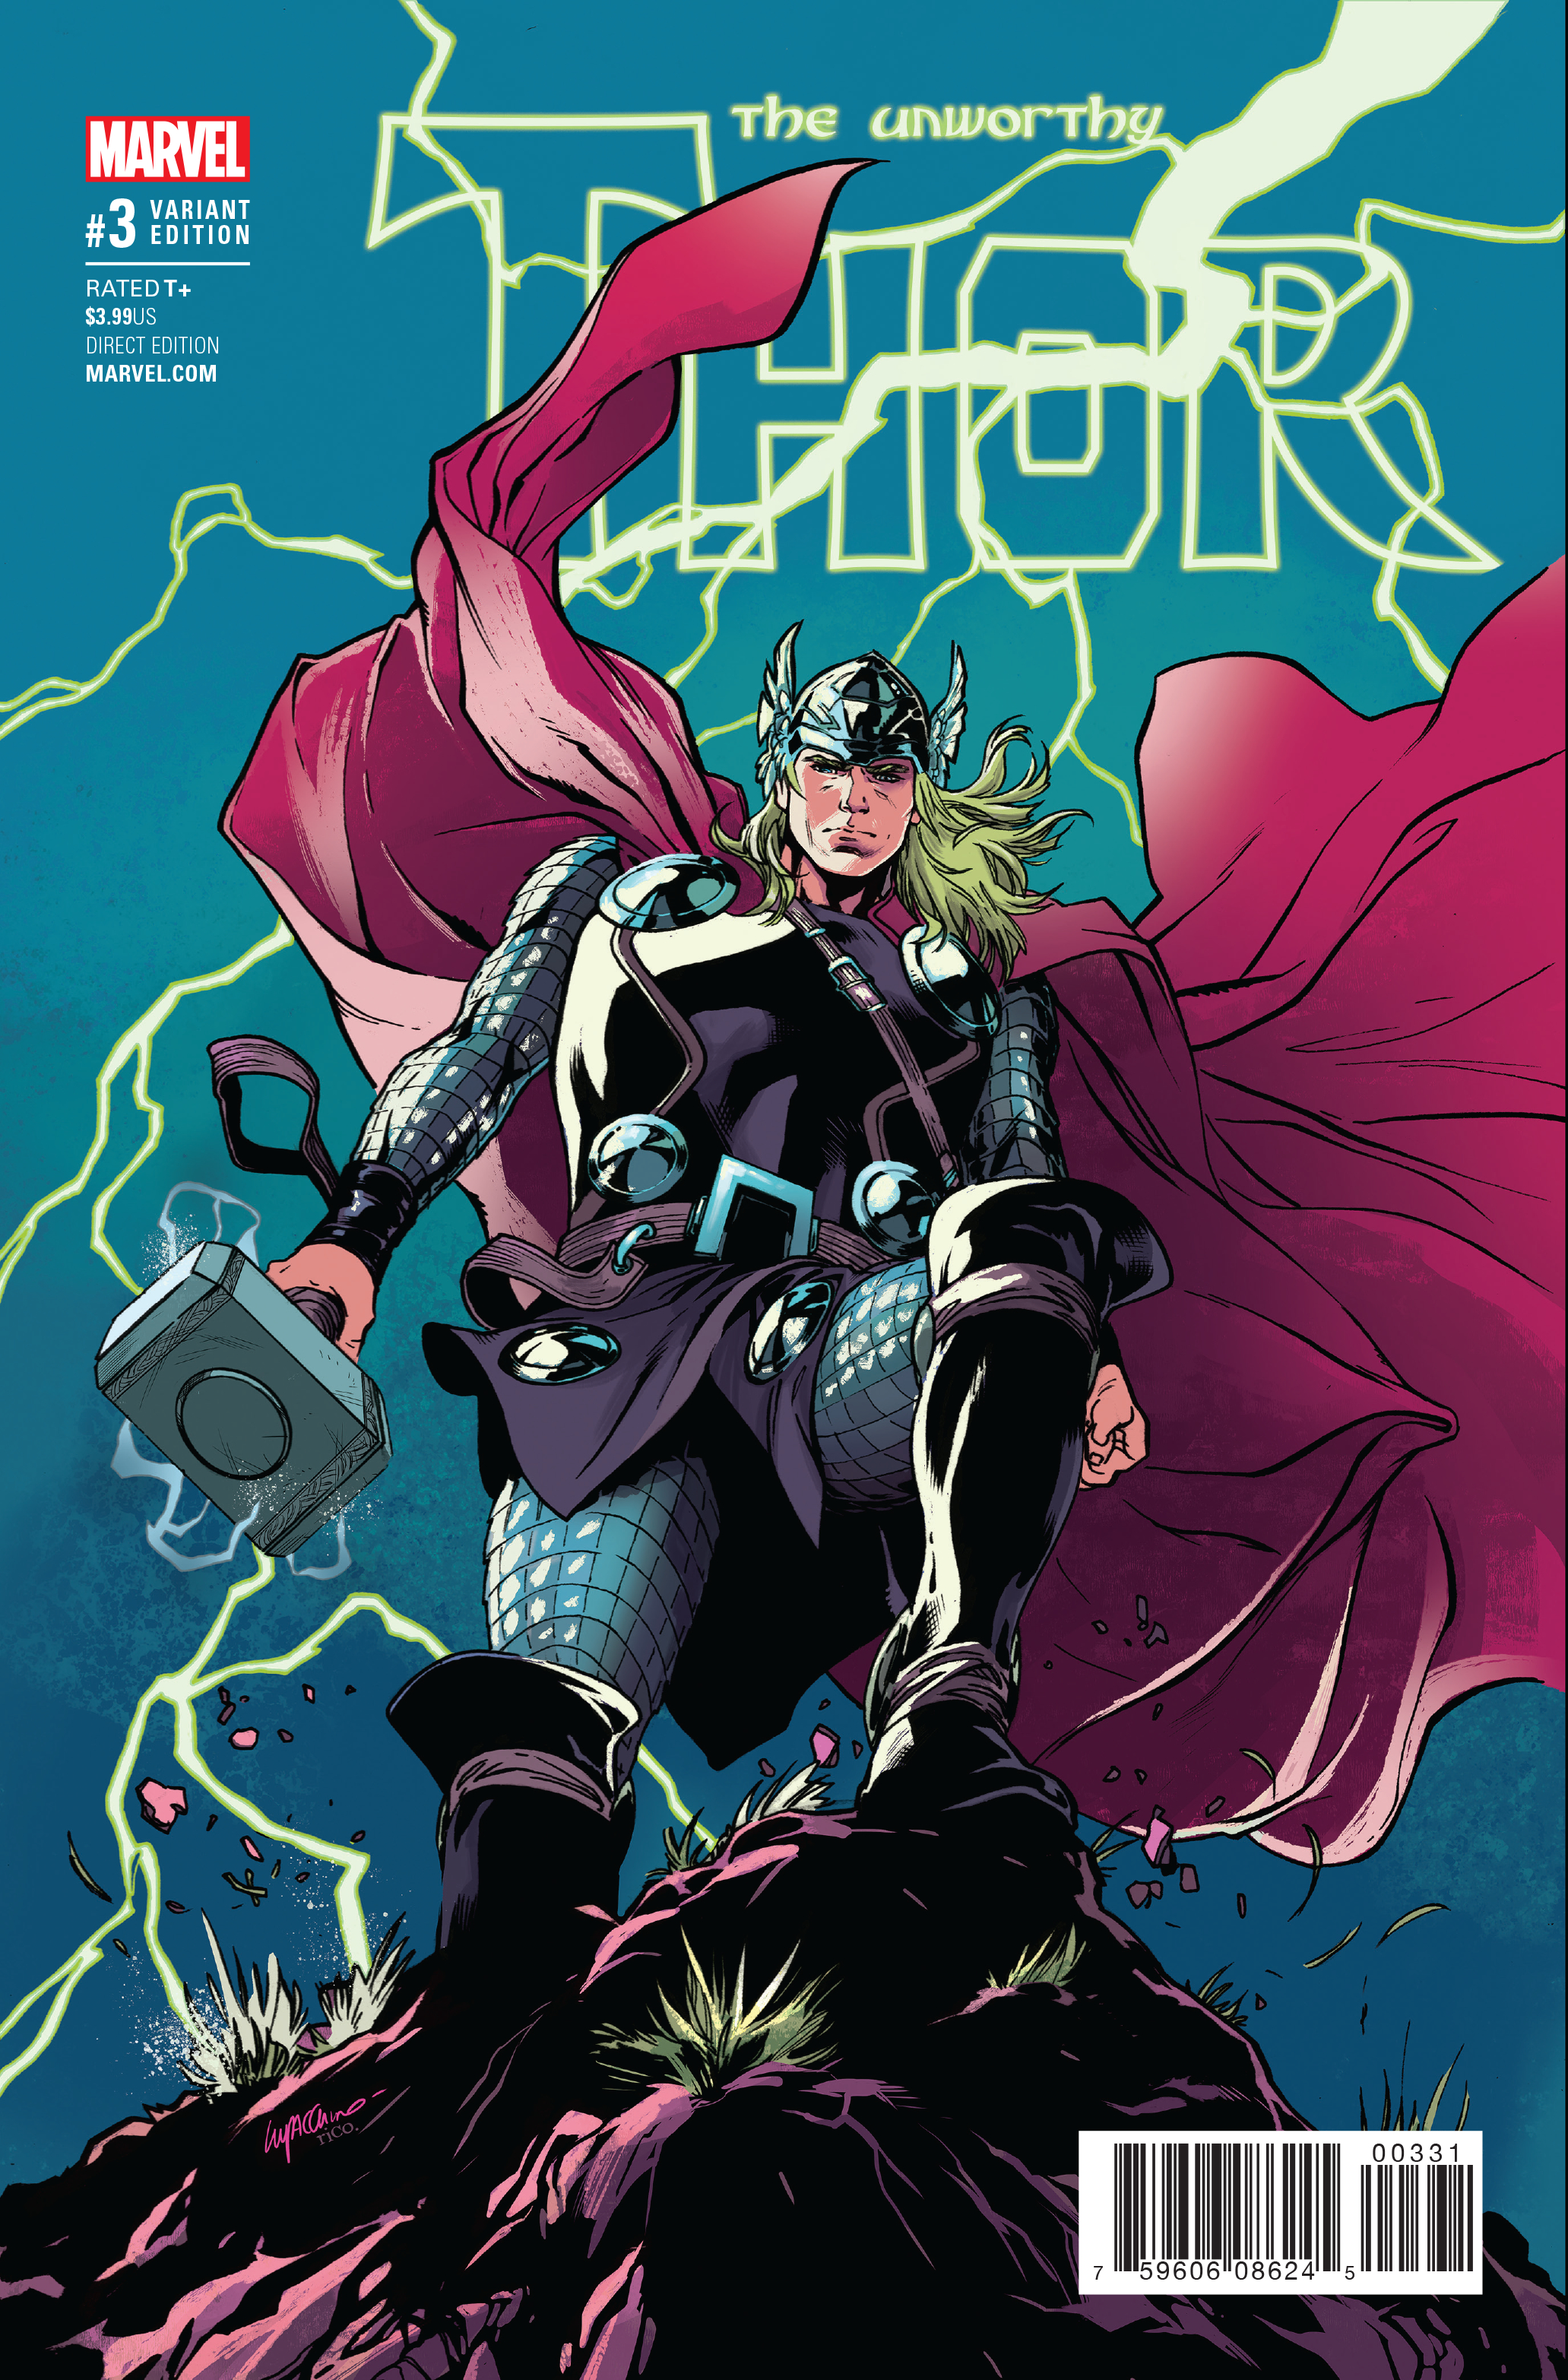 UNWORTHY THOR #3 (OF 5) LUPACCHINO VAR